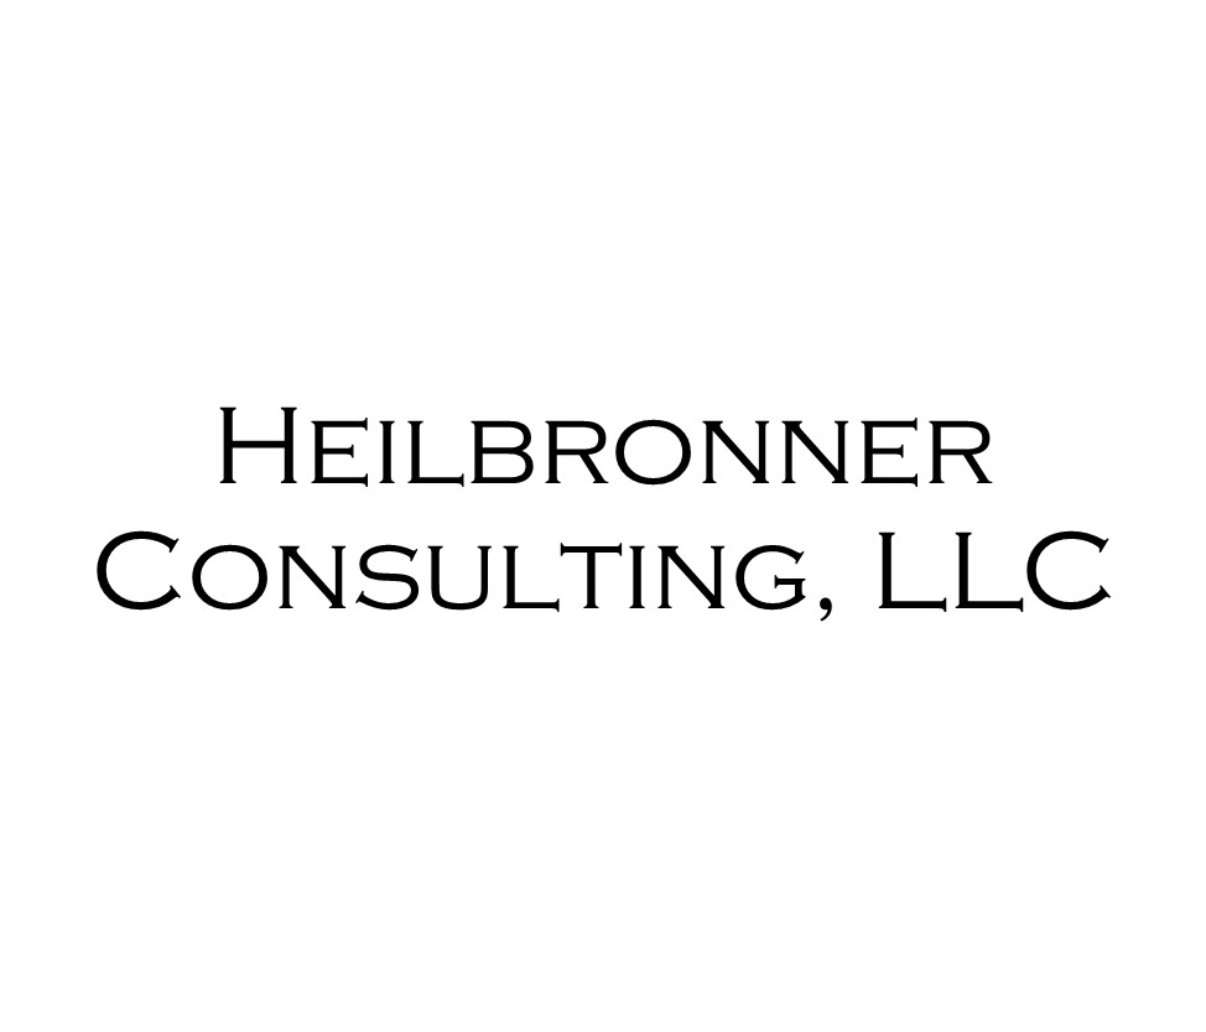 HeilbronnerConsulting-Logo-ConventionSponsor-Reel